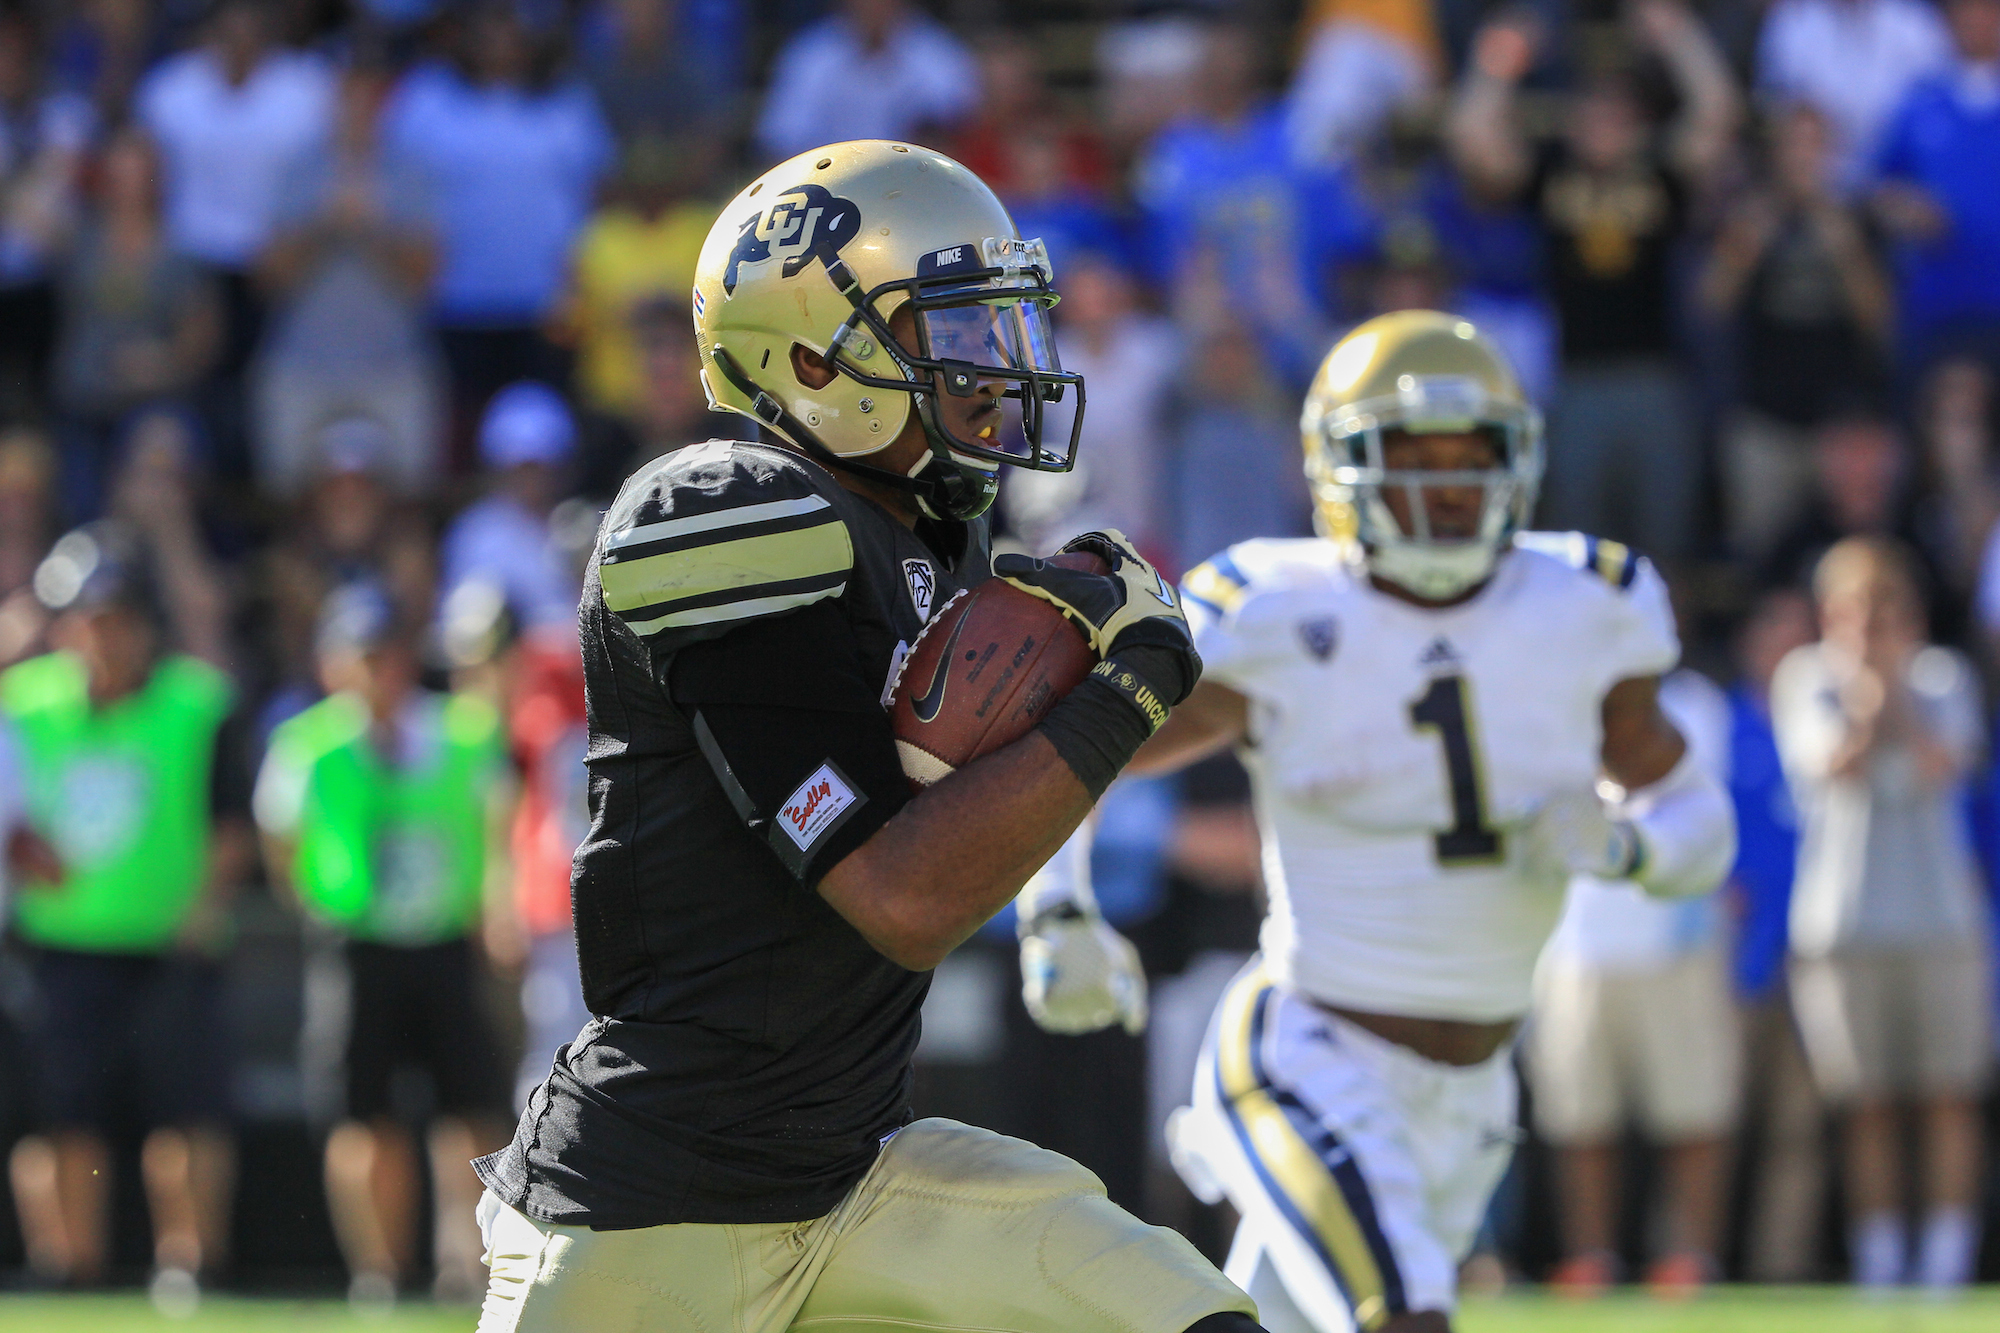 Wide receiver Bryce Bobo breaks away for a touchdown in the 4th quarter of play against UCLA on Oct. 25 2014. The Bruins beat the Buffs 40-37 in 2OT. (Nigel Amstock /CU Independent File)